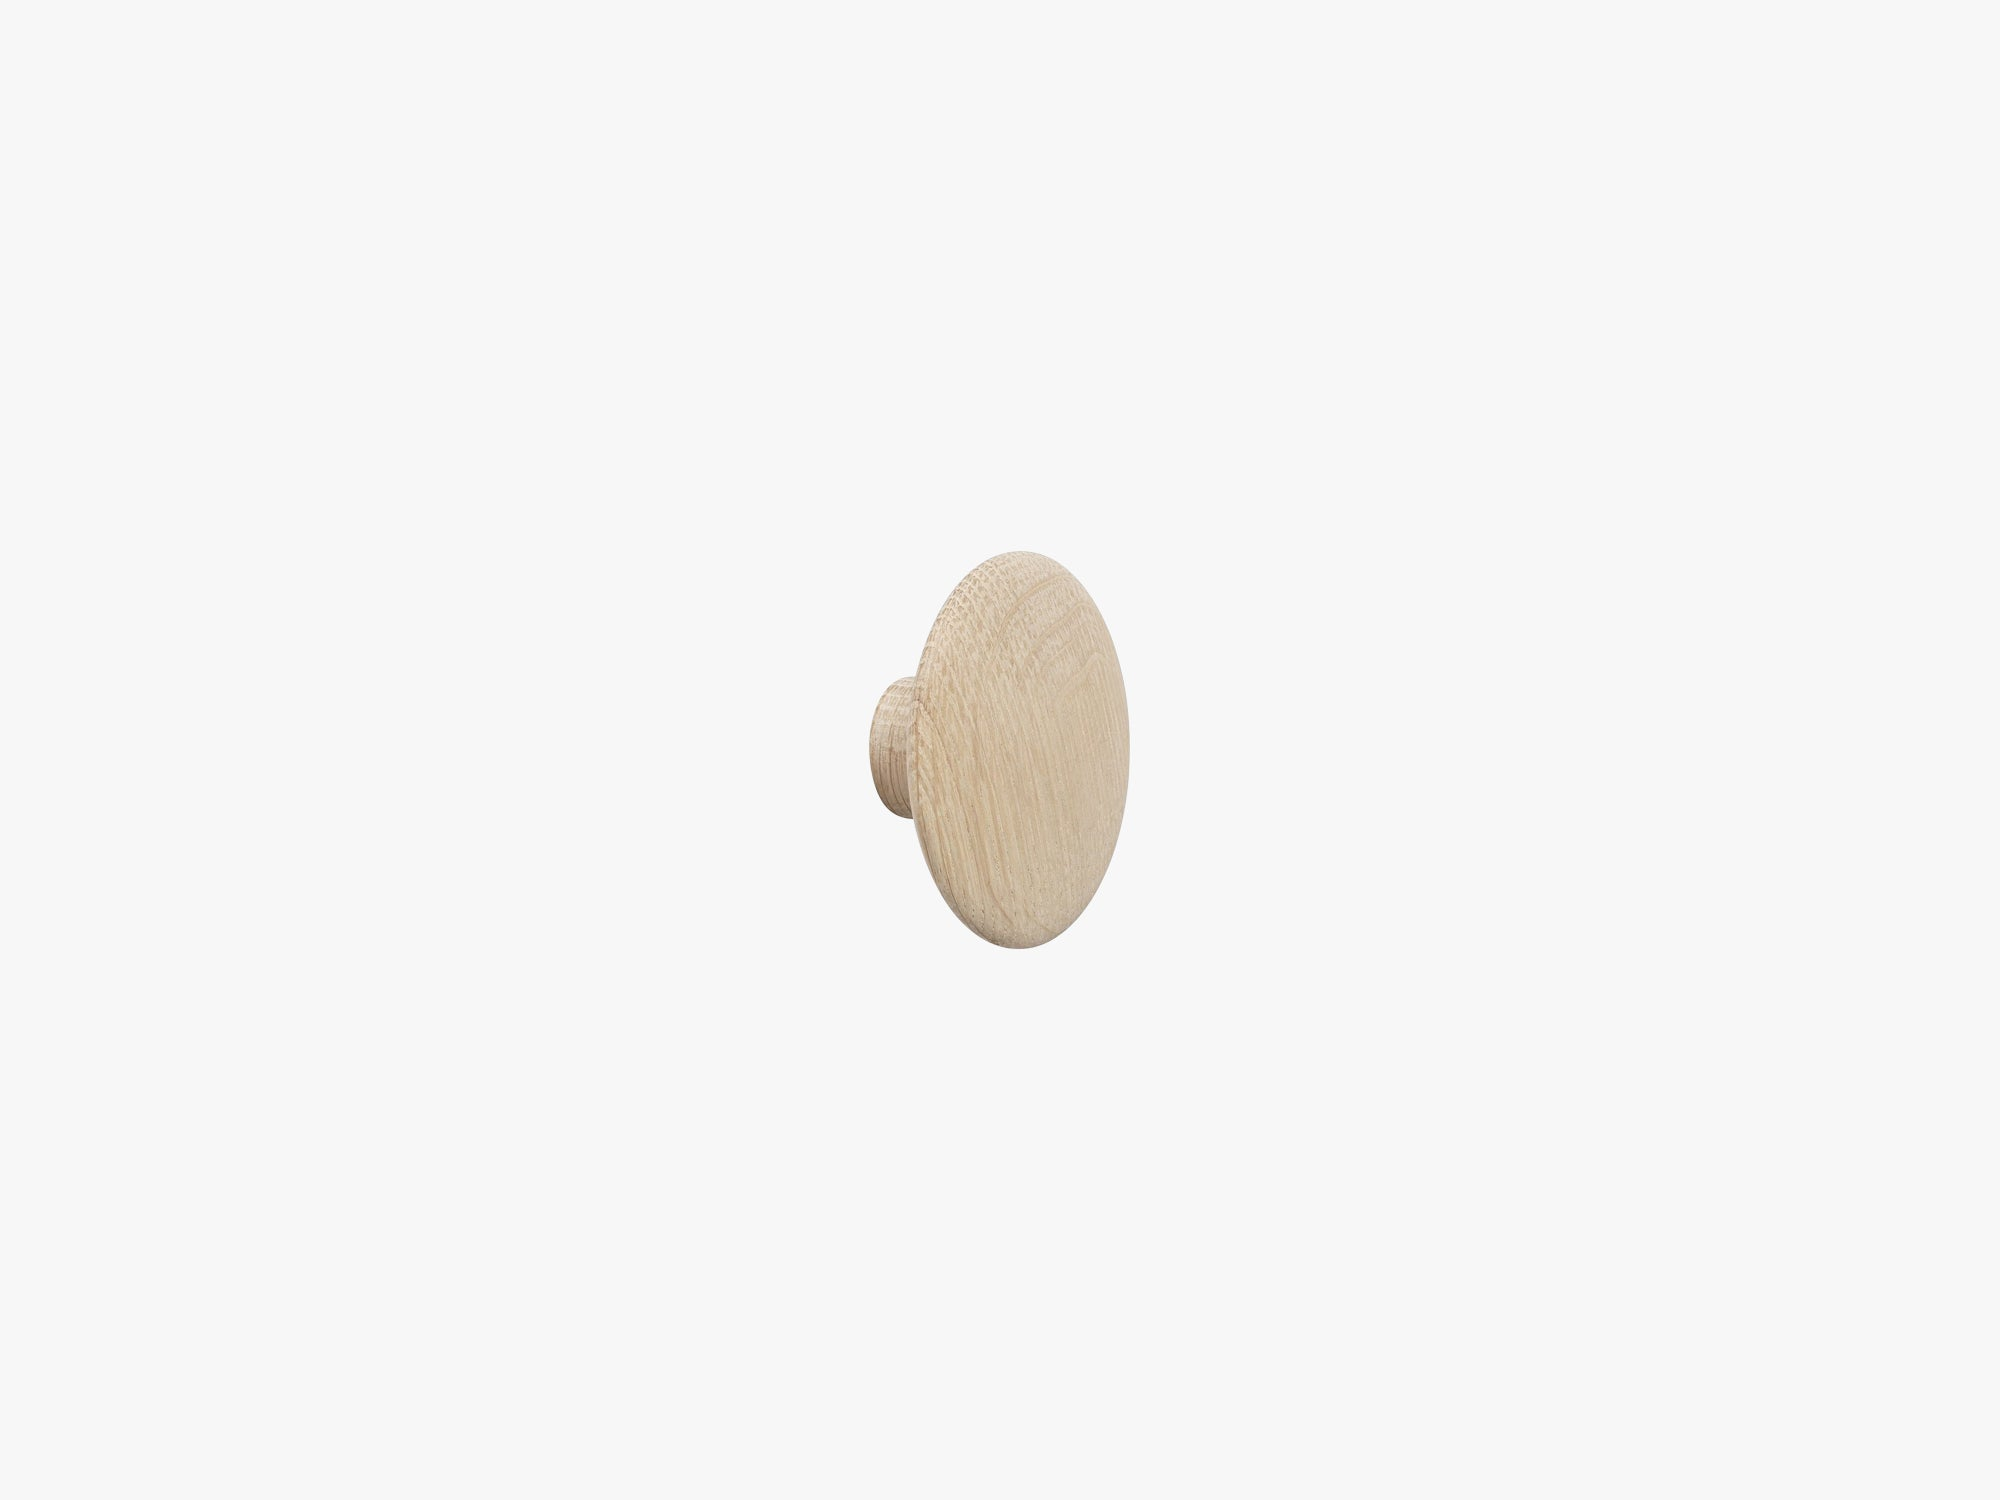 The Dots Coat Hooks / X-Small, Oak fra Muuto